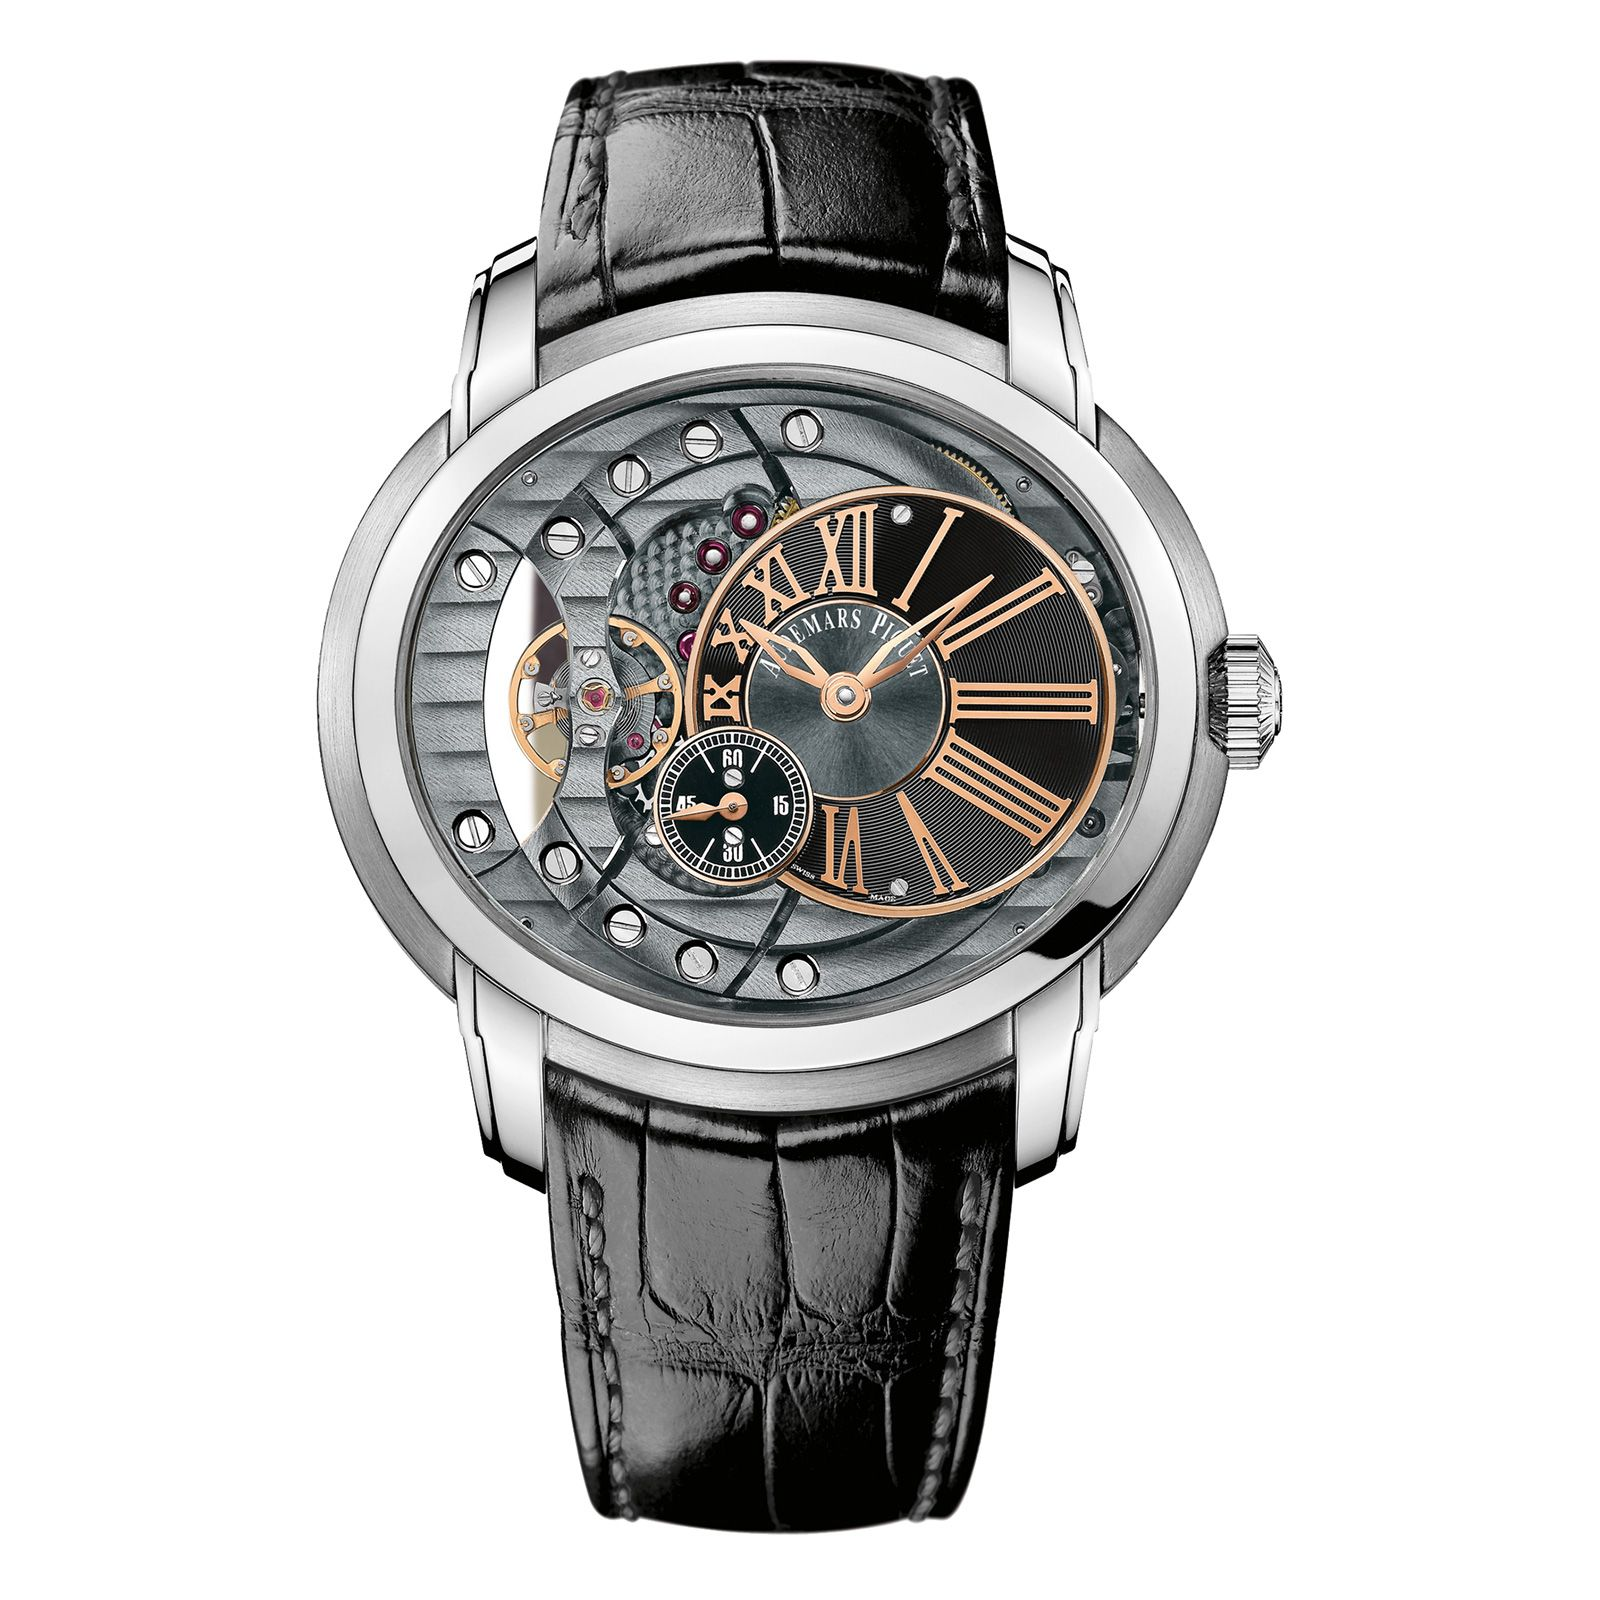 7b2529c68a98 Millenary.jpg · Millenary. There s no way Audemars Piguet ...